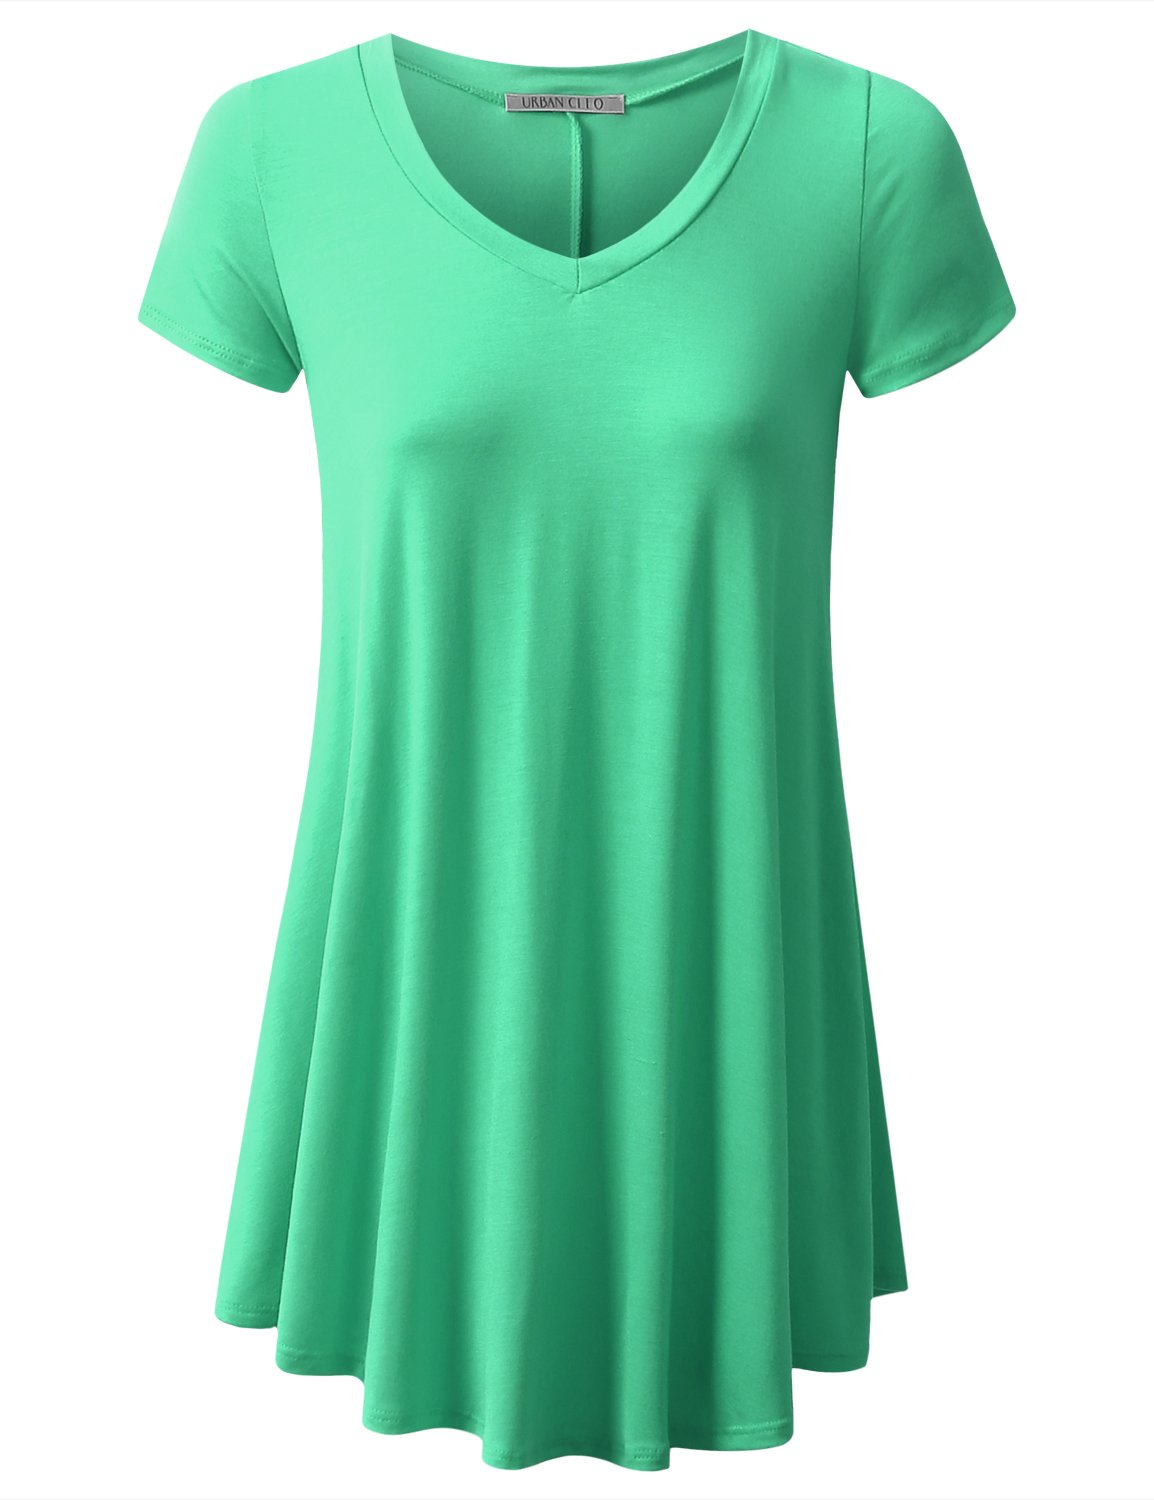 URBANCLEO Womens V-Neck Elong Tunic Top Mini T-Shirt Dress Mint Medium